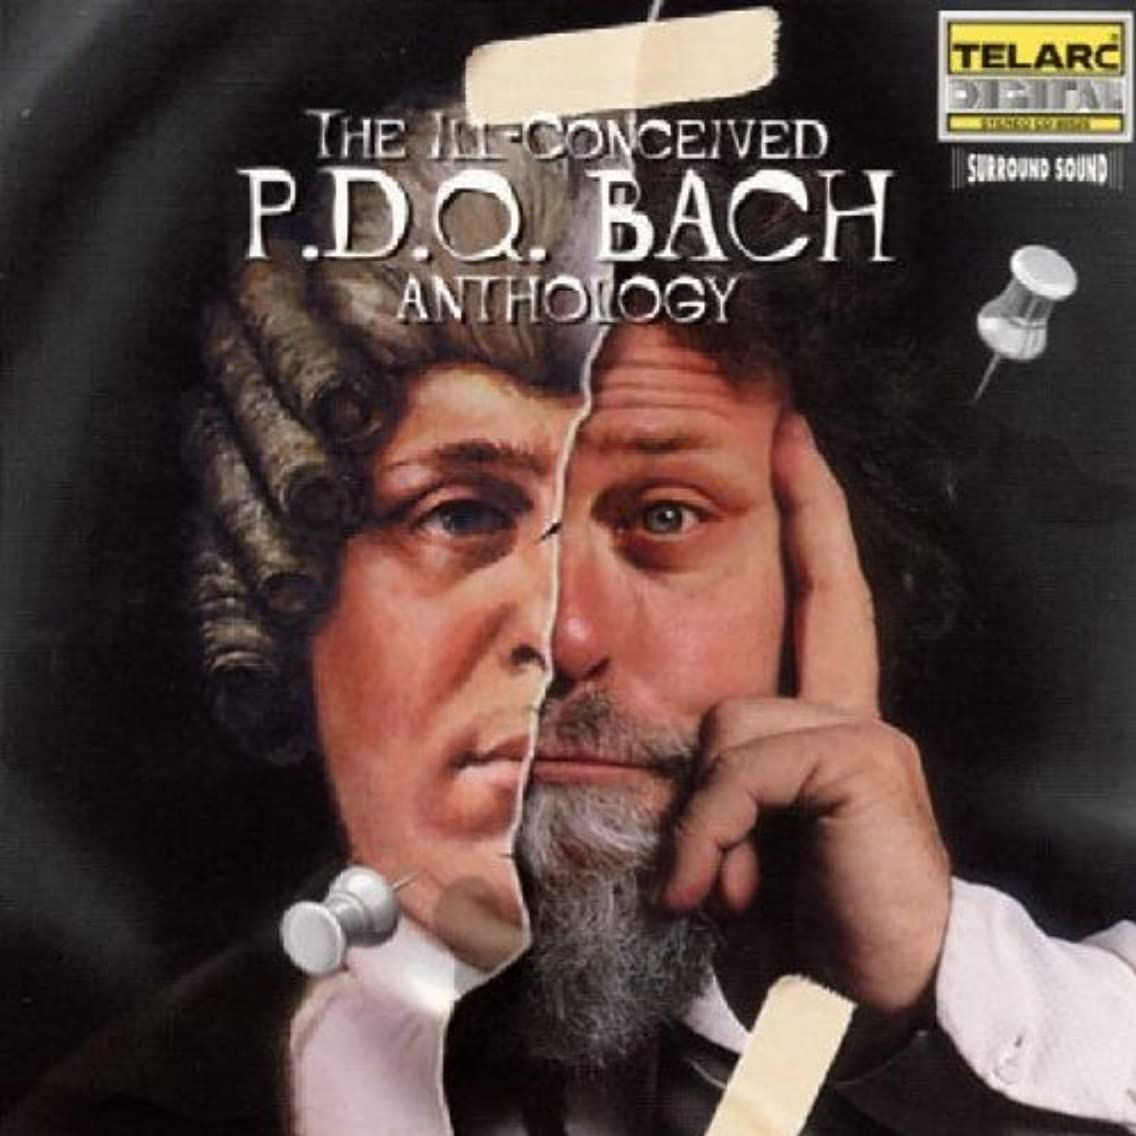 The Ill-Conceived P.D.Q. Bach Anthology contract